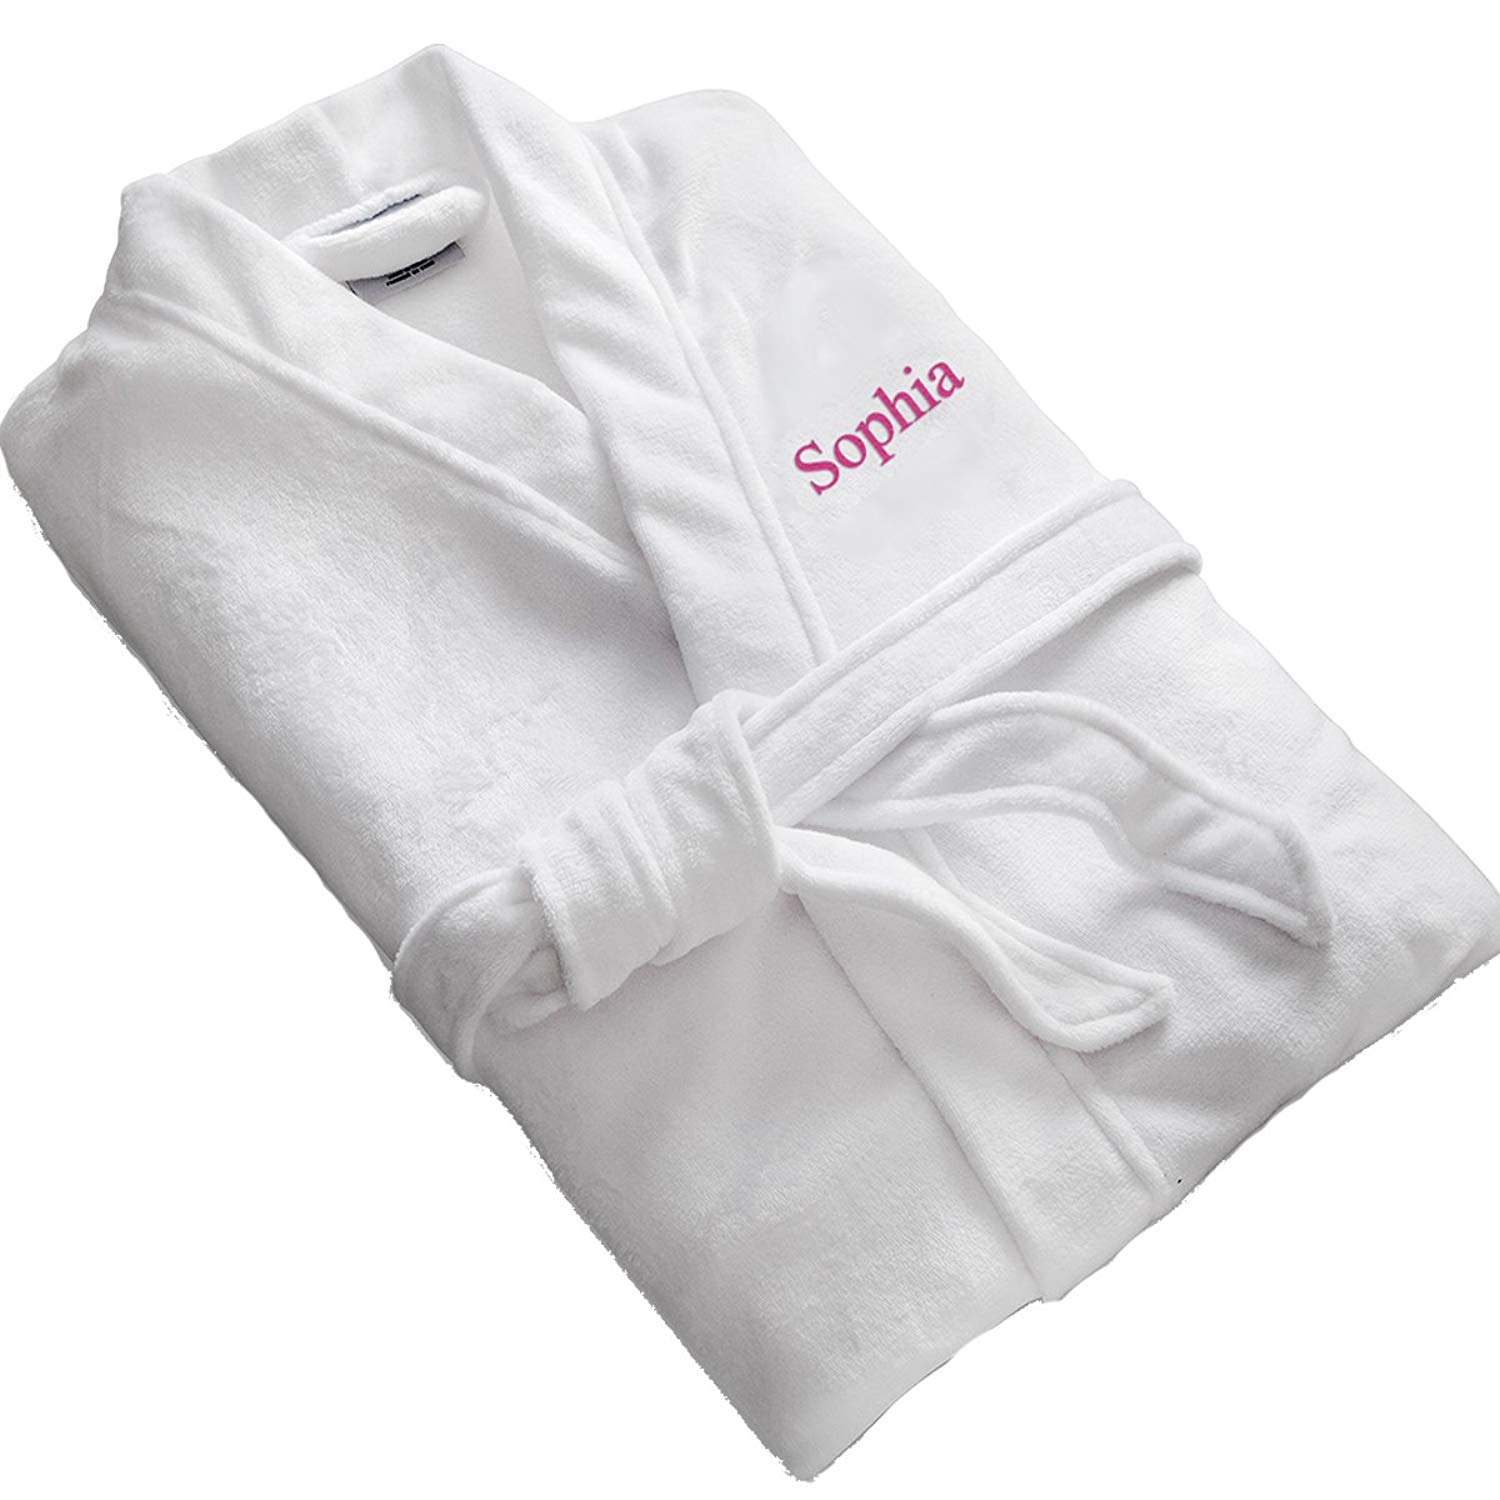 72a7d4b63d Get Quotations · A Gift Personalized White Personalized Microfiber Robe - Personalized  Robe - Embroidered Robe